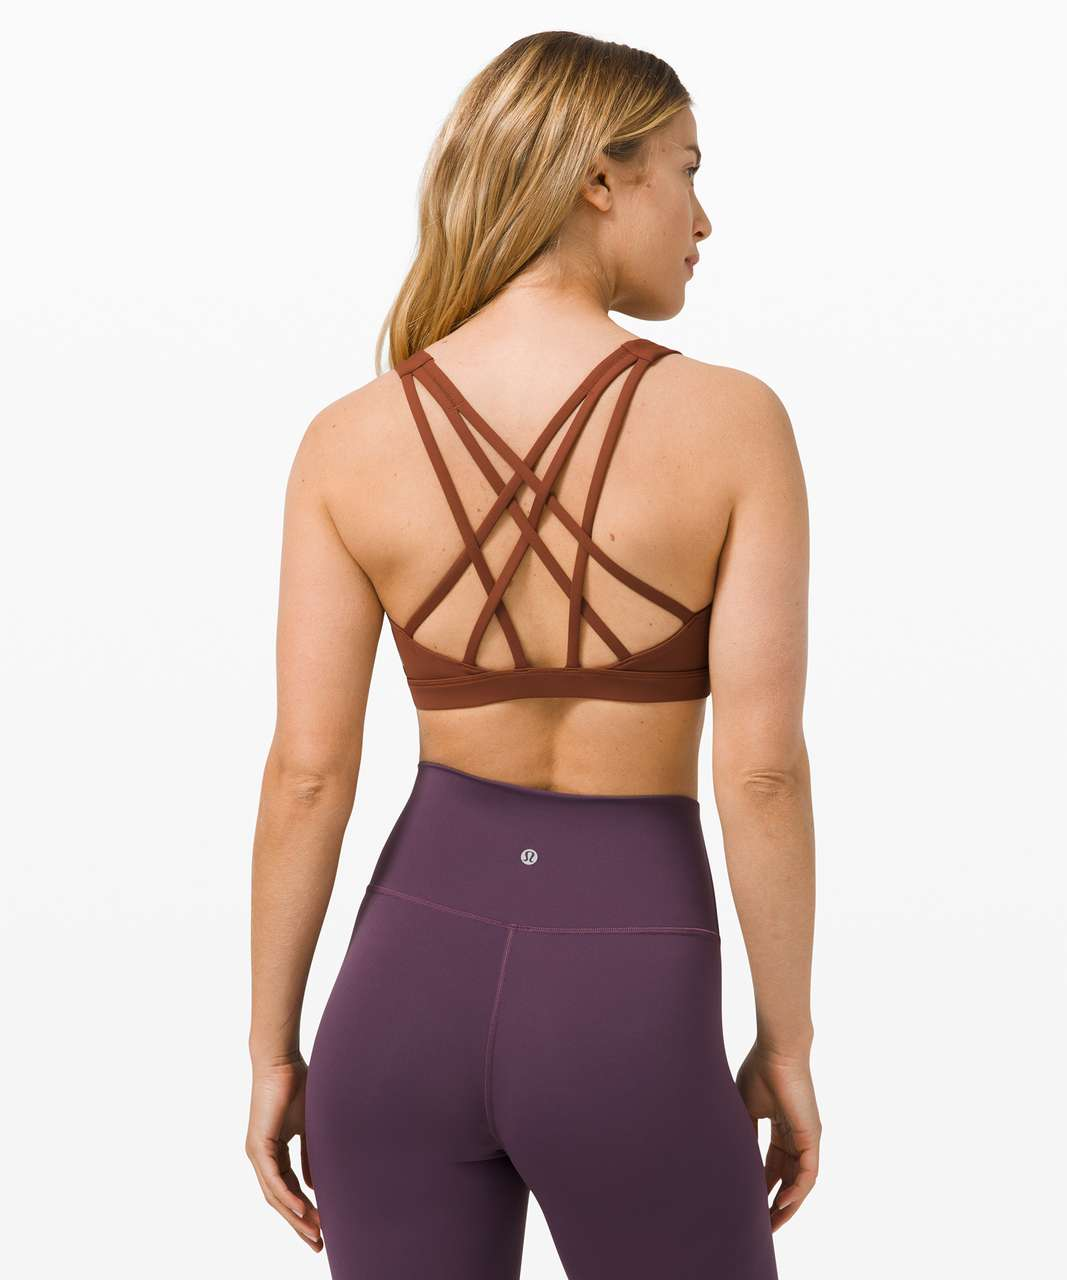 Lululemon Free To Be Serene Bra *Light Support, C/D Cup - Dark Terracotta